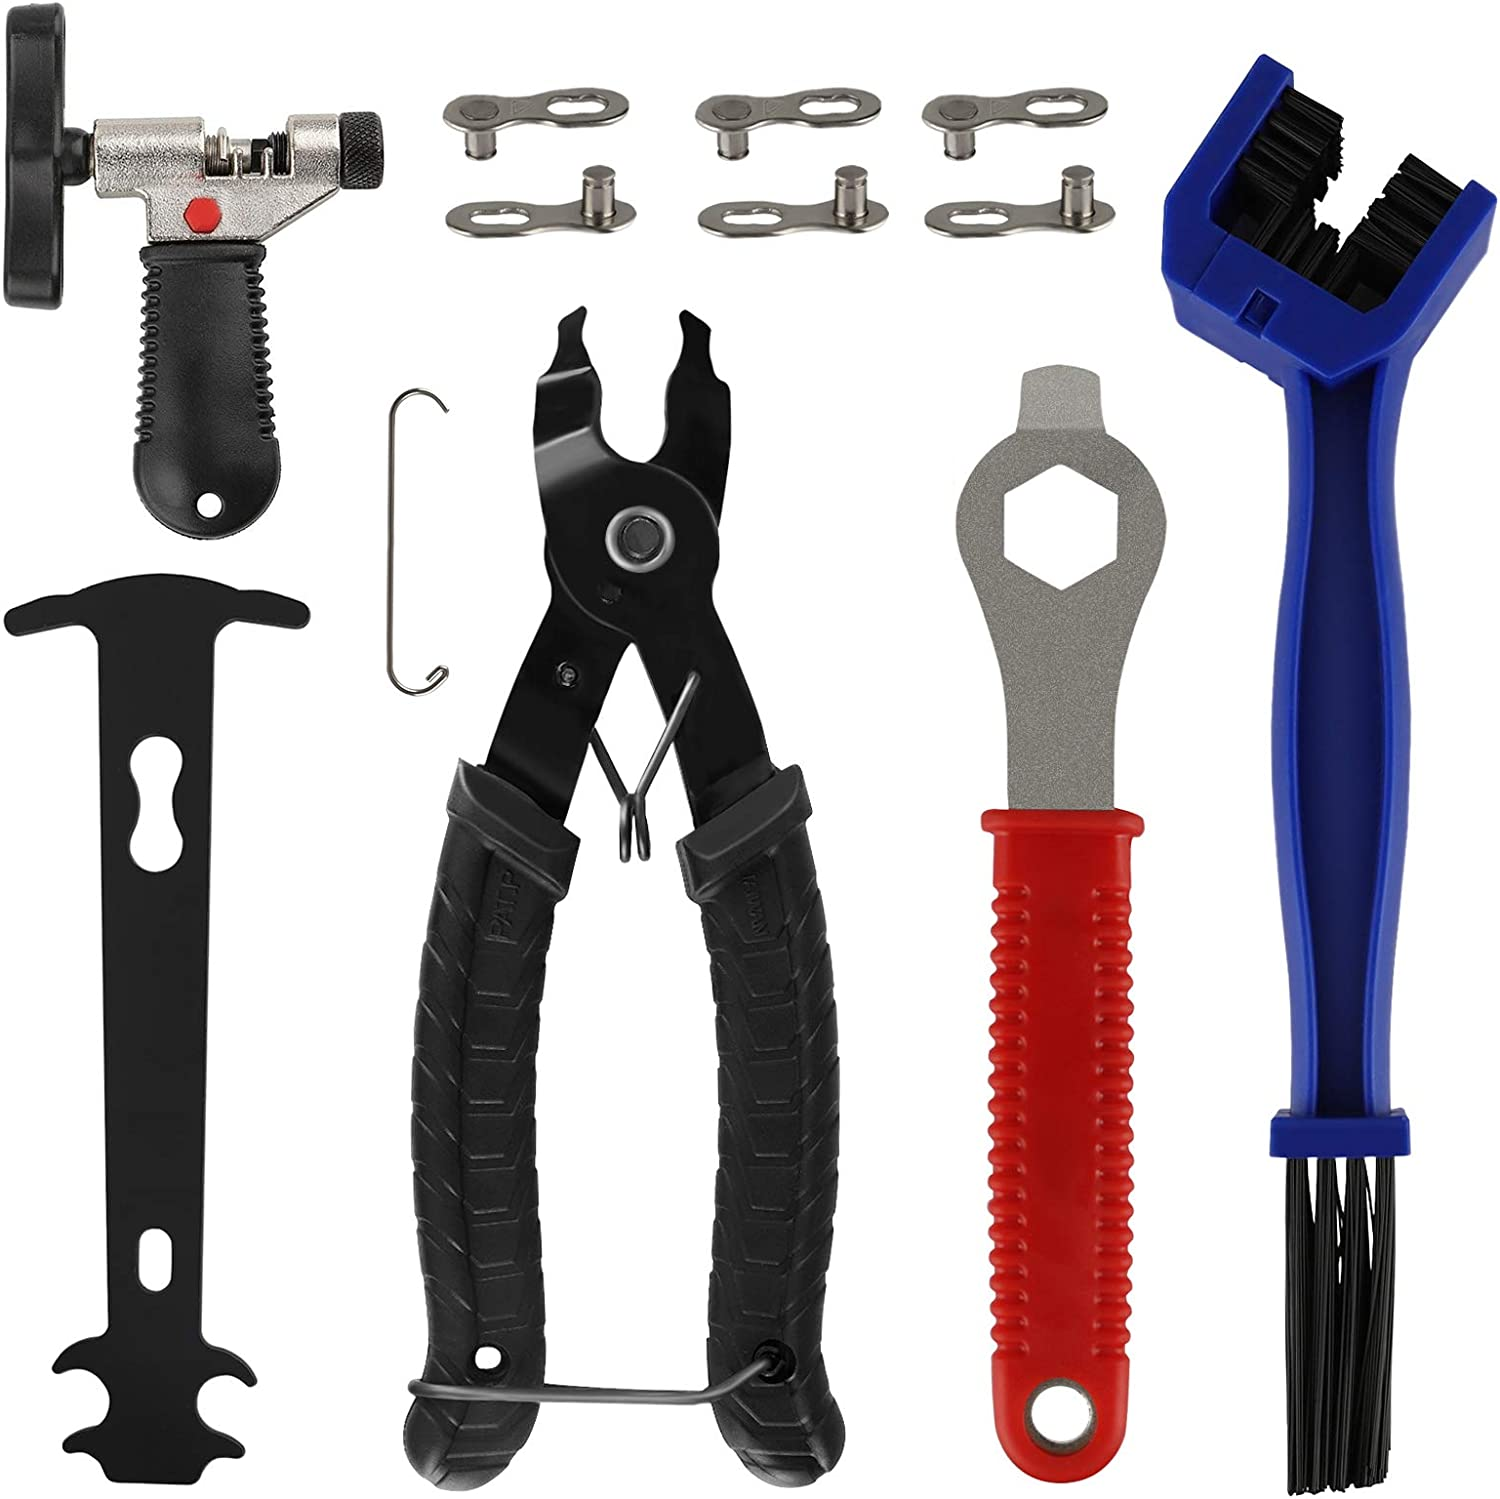 San Jose Mall Linkstyle Bike Chain Free Shipping Cheap Bargain Gift Tool with Bicycle Link Kit